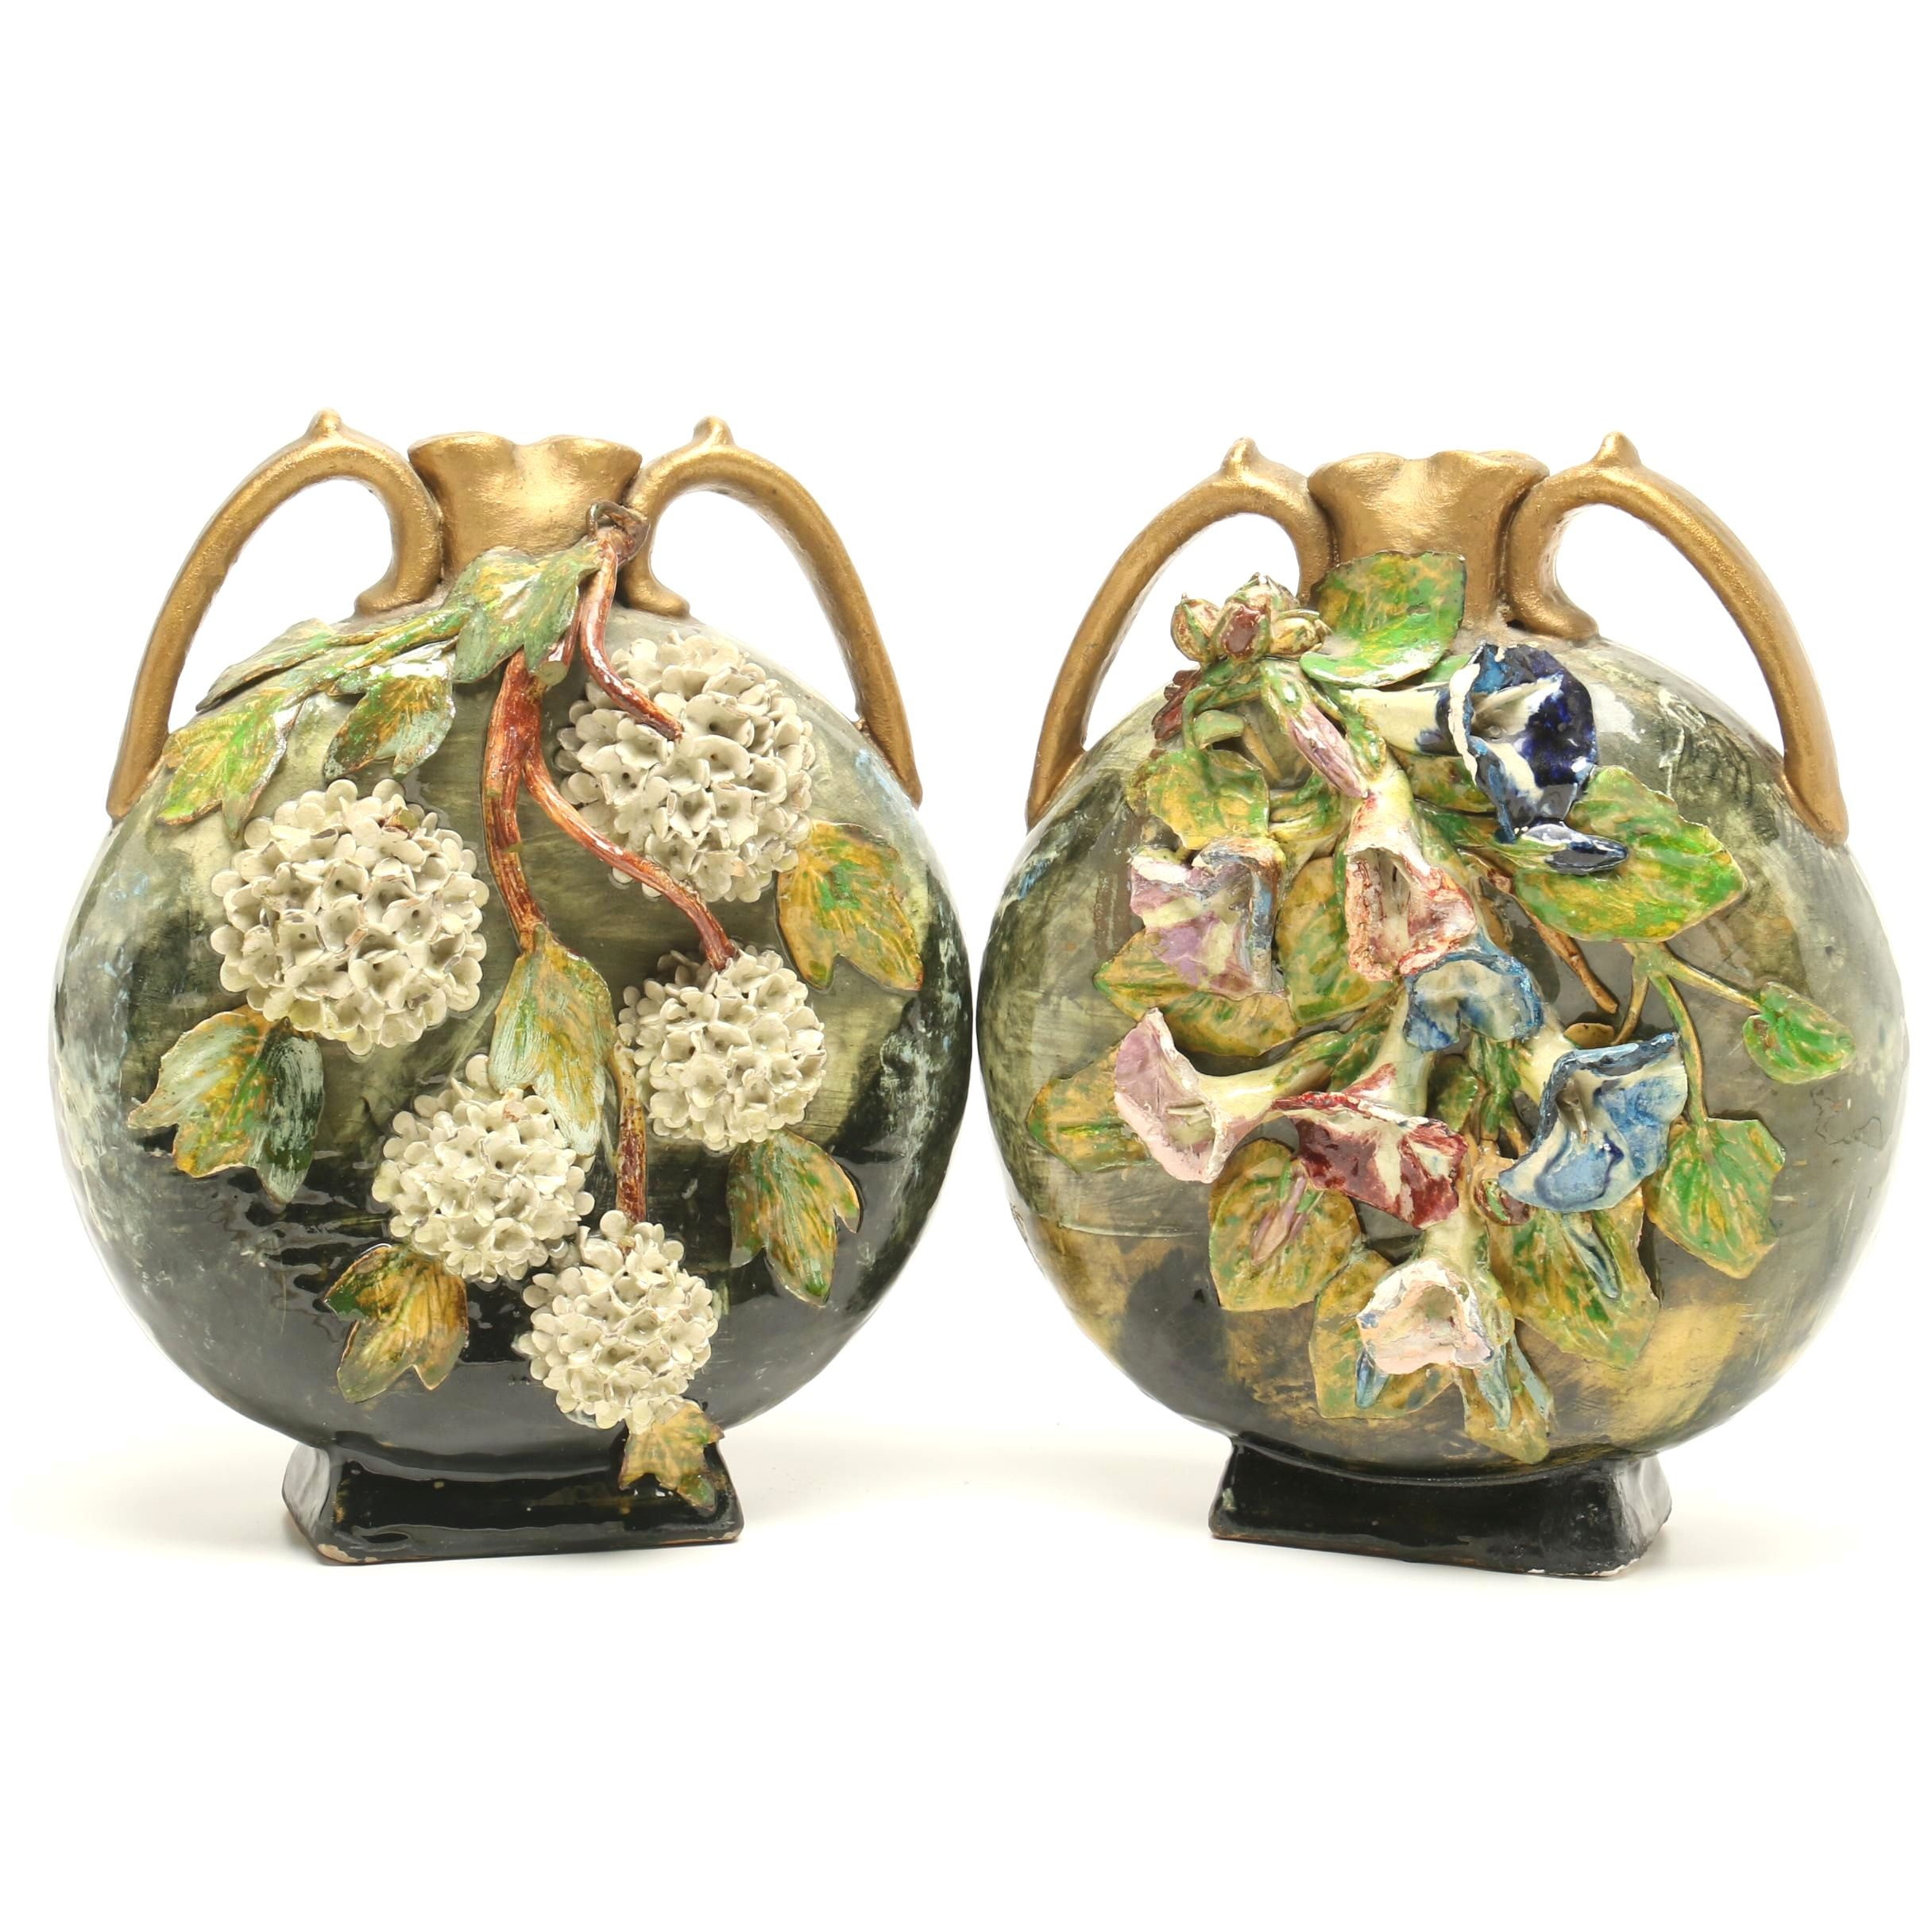 Cincinnati Art Pottery Vases, Late 19th Century